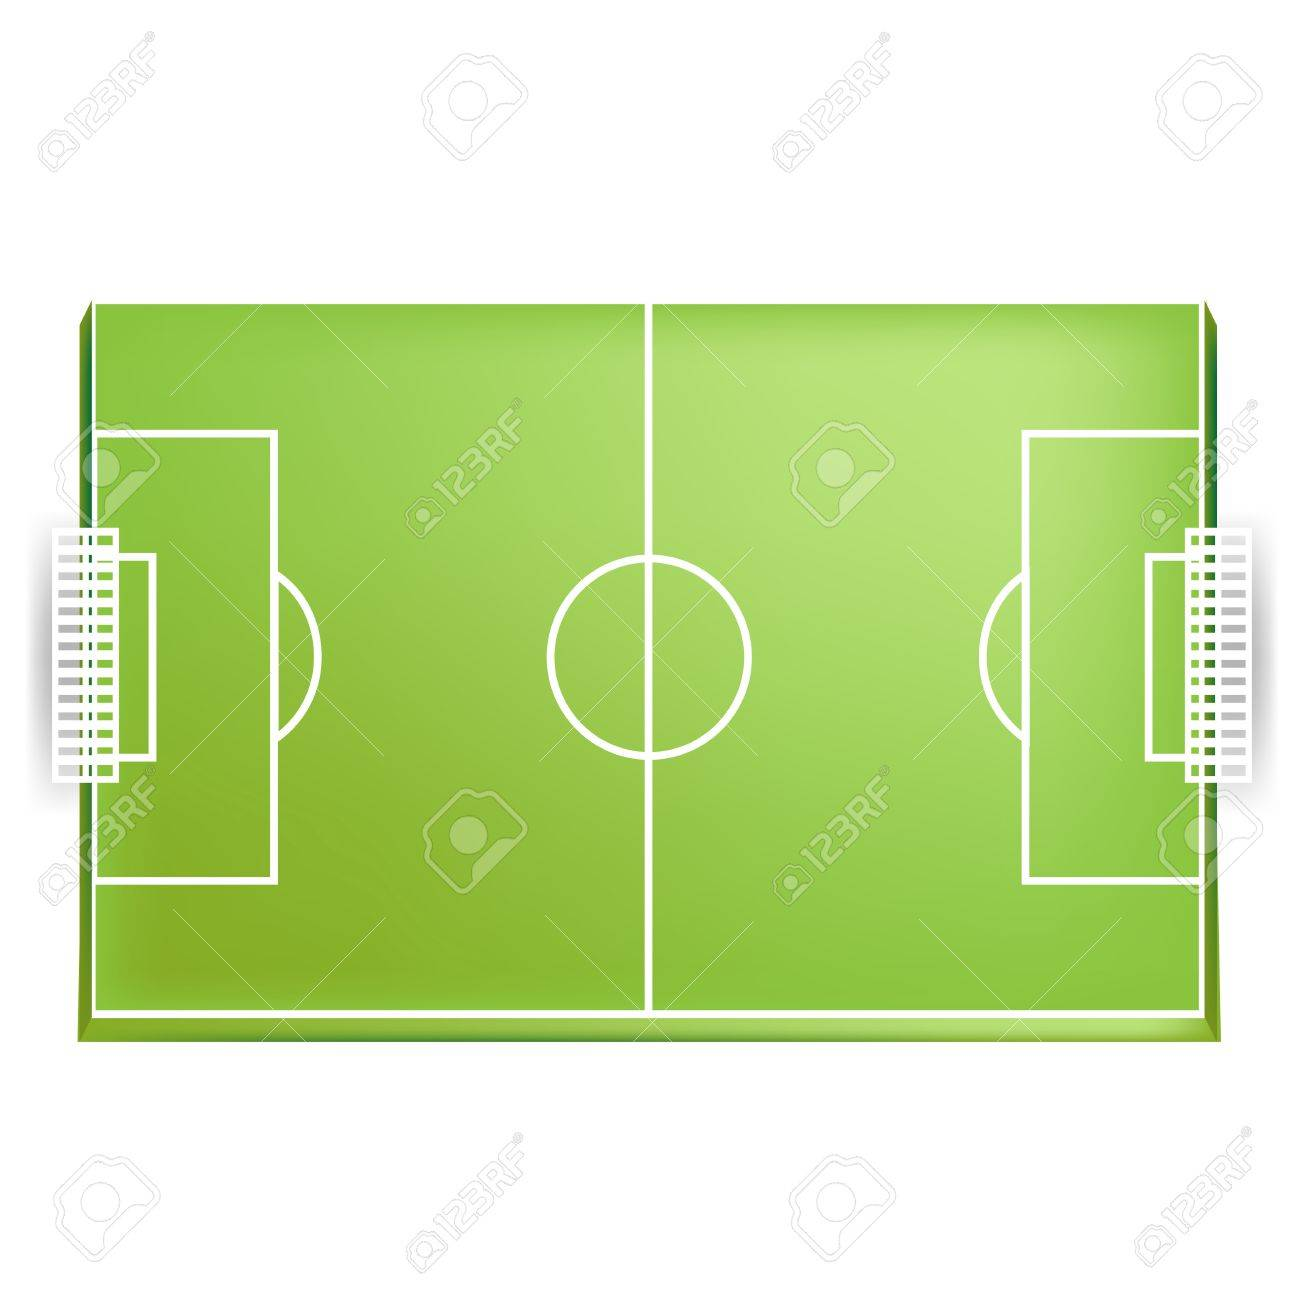 soccer field or football field from above view isolated royalty free rh 123rf com football field vector 3d american football field vector free